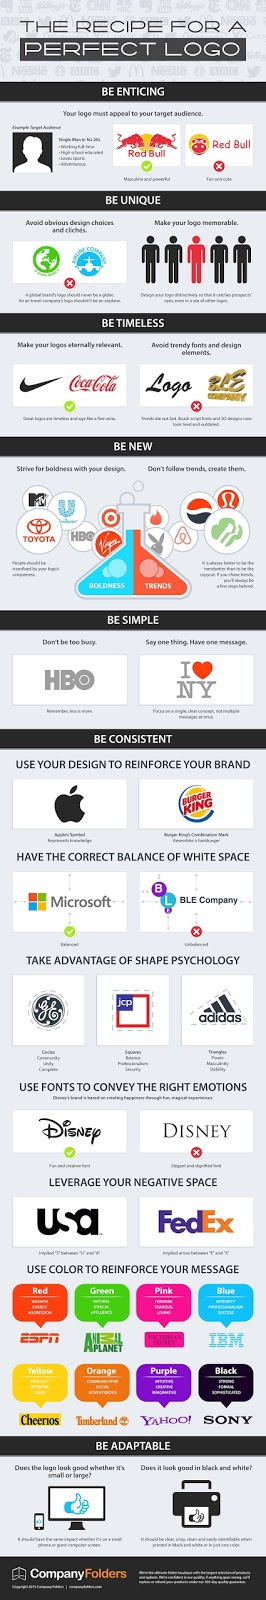 7 Design Tips For Effective Website Logos